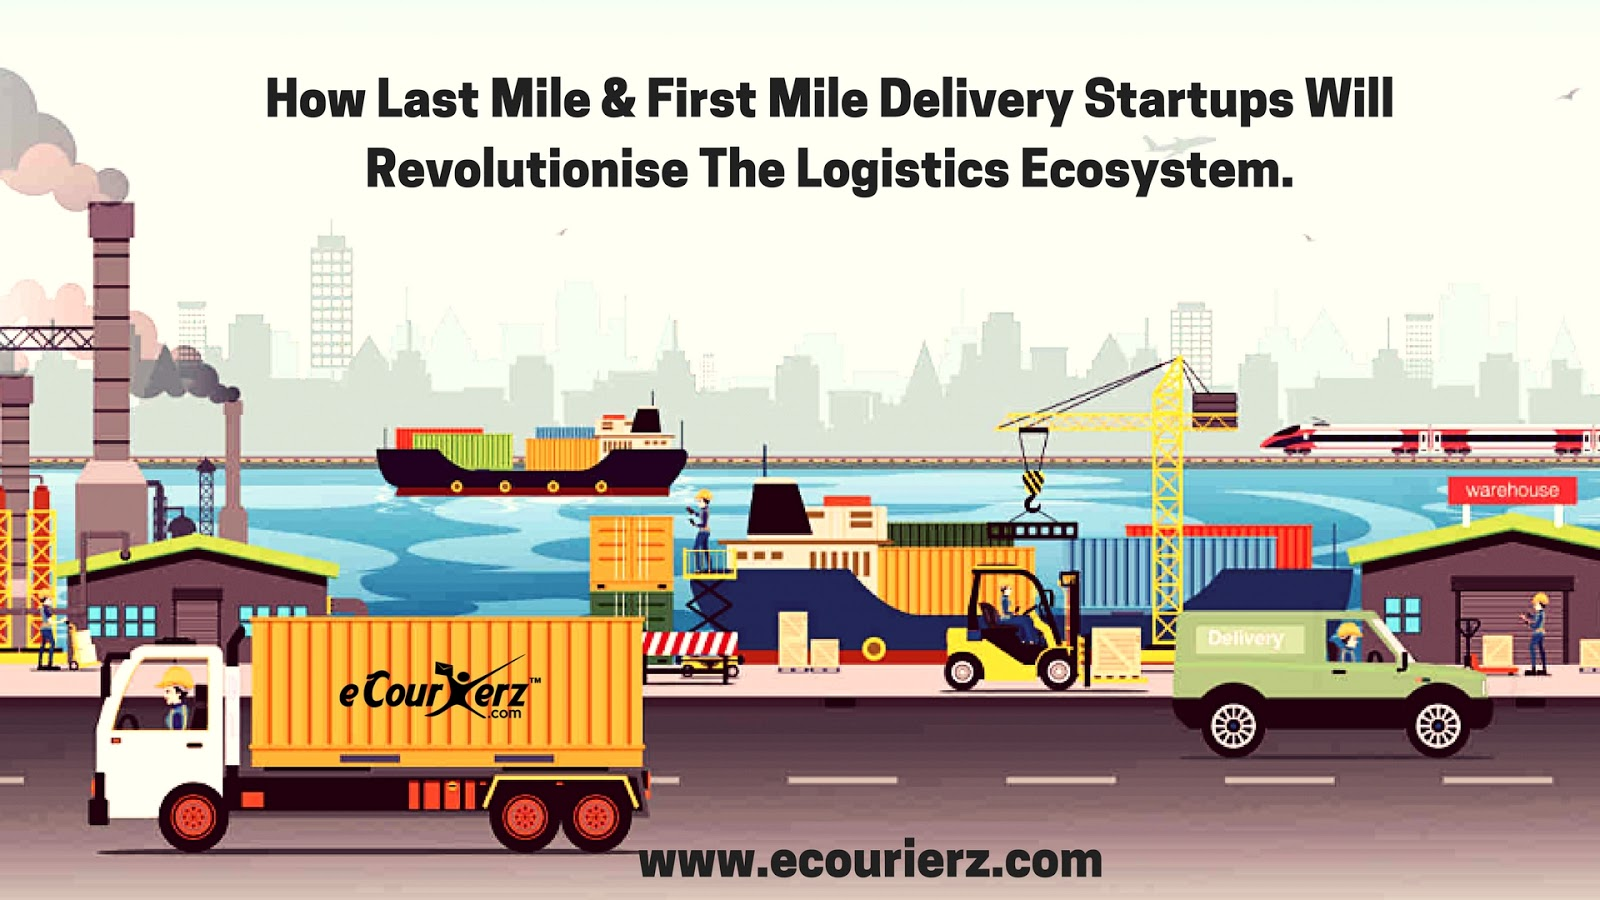 How Last-Mile & First-Mile Delivery Startups Will